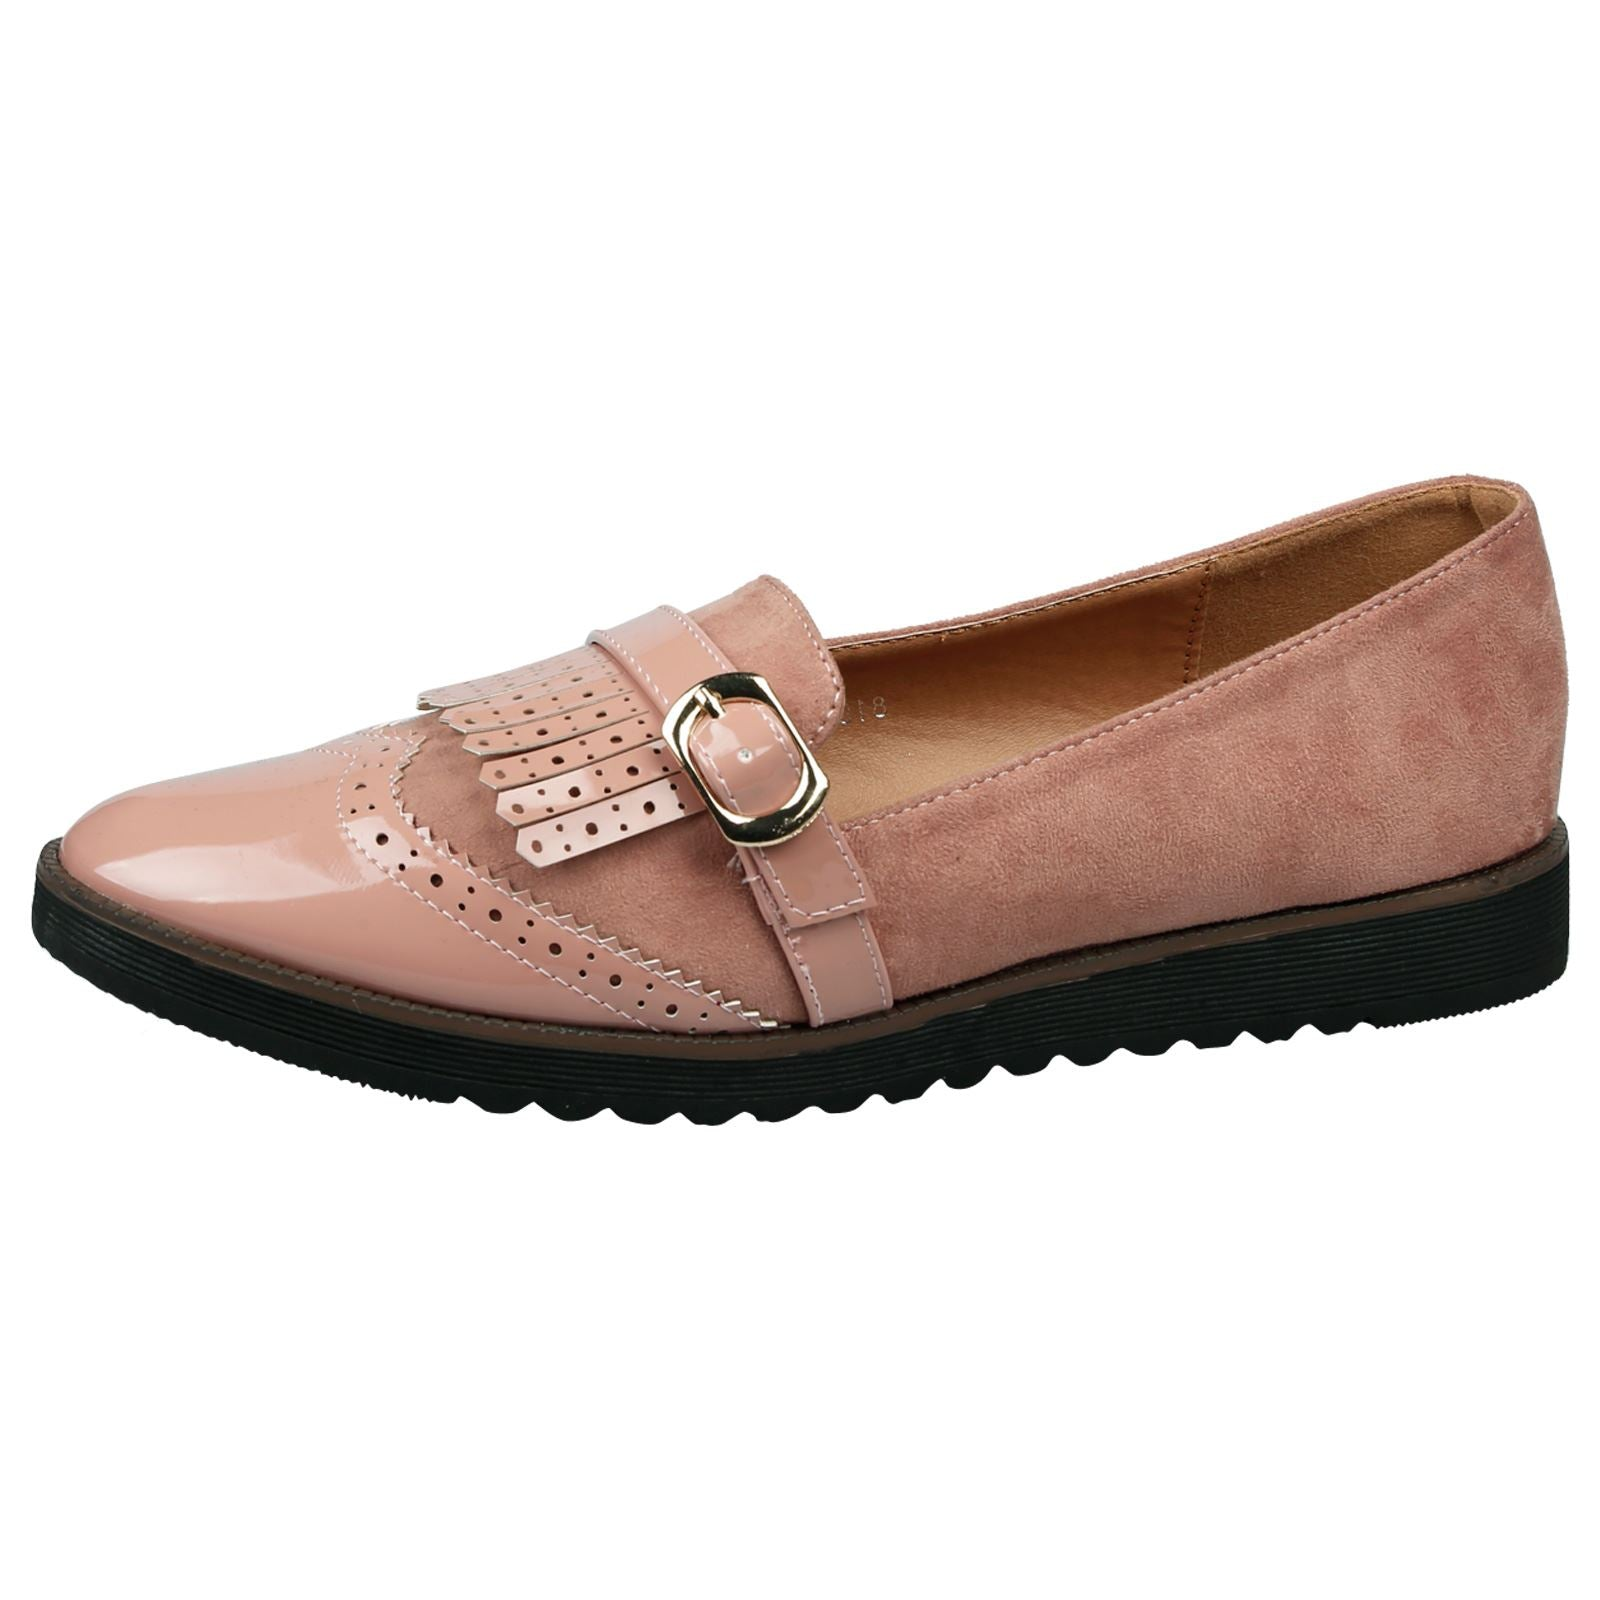 Bryn Fringed Loafers in Pink